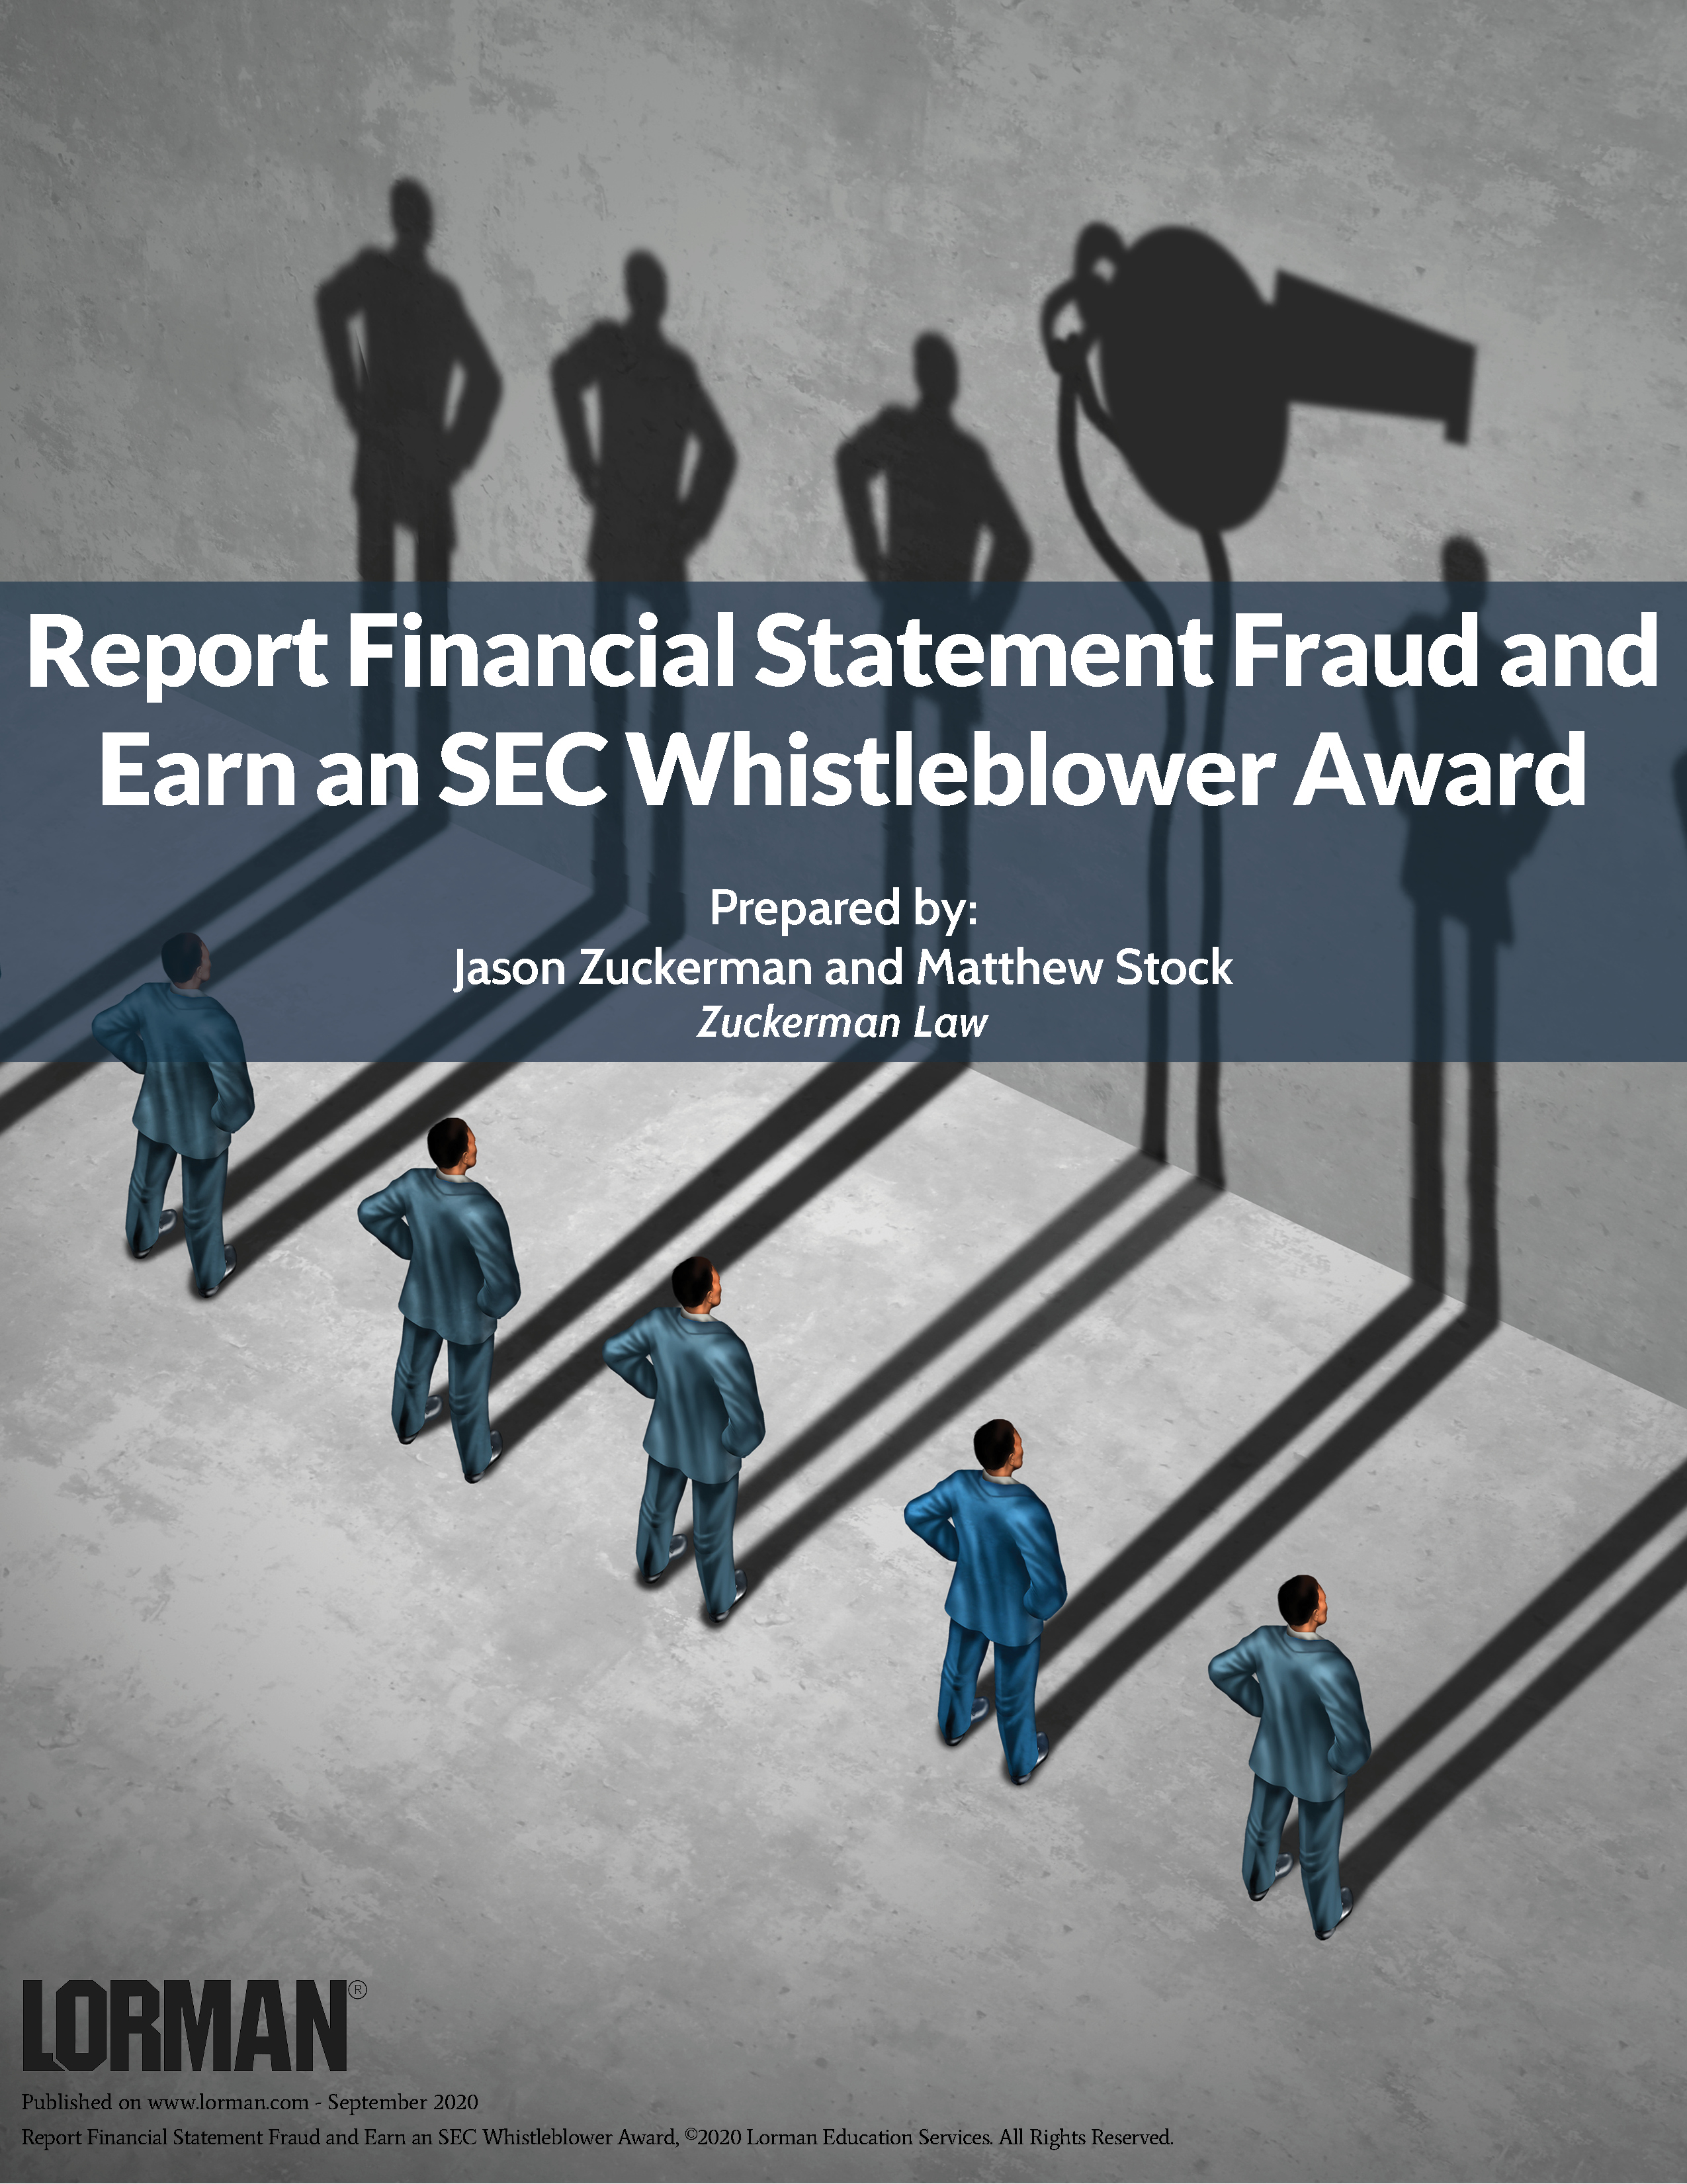 Report Financial Statement Fraud and Earn an SEC Whistleblower Award